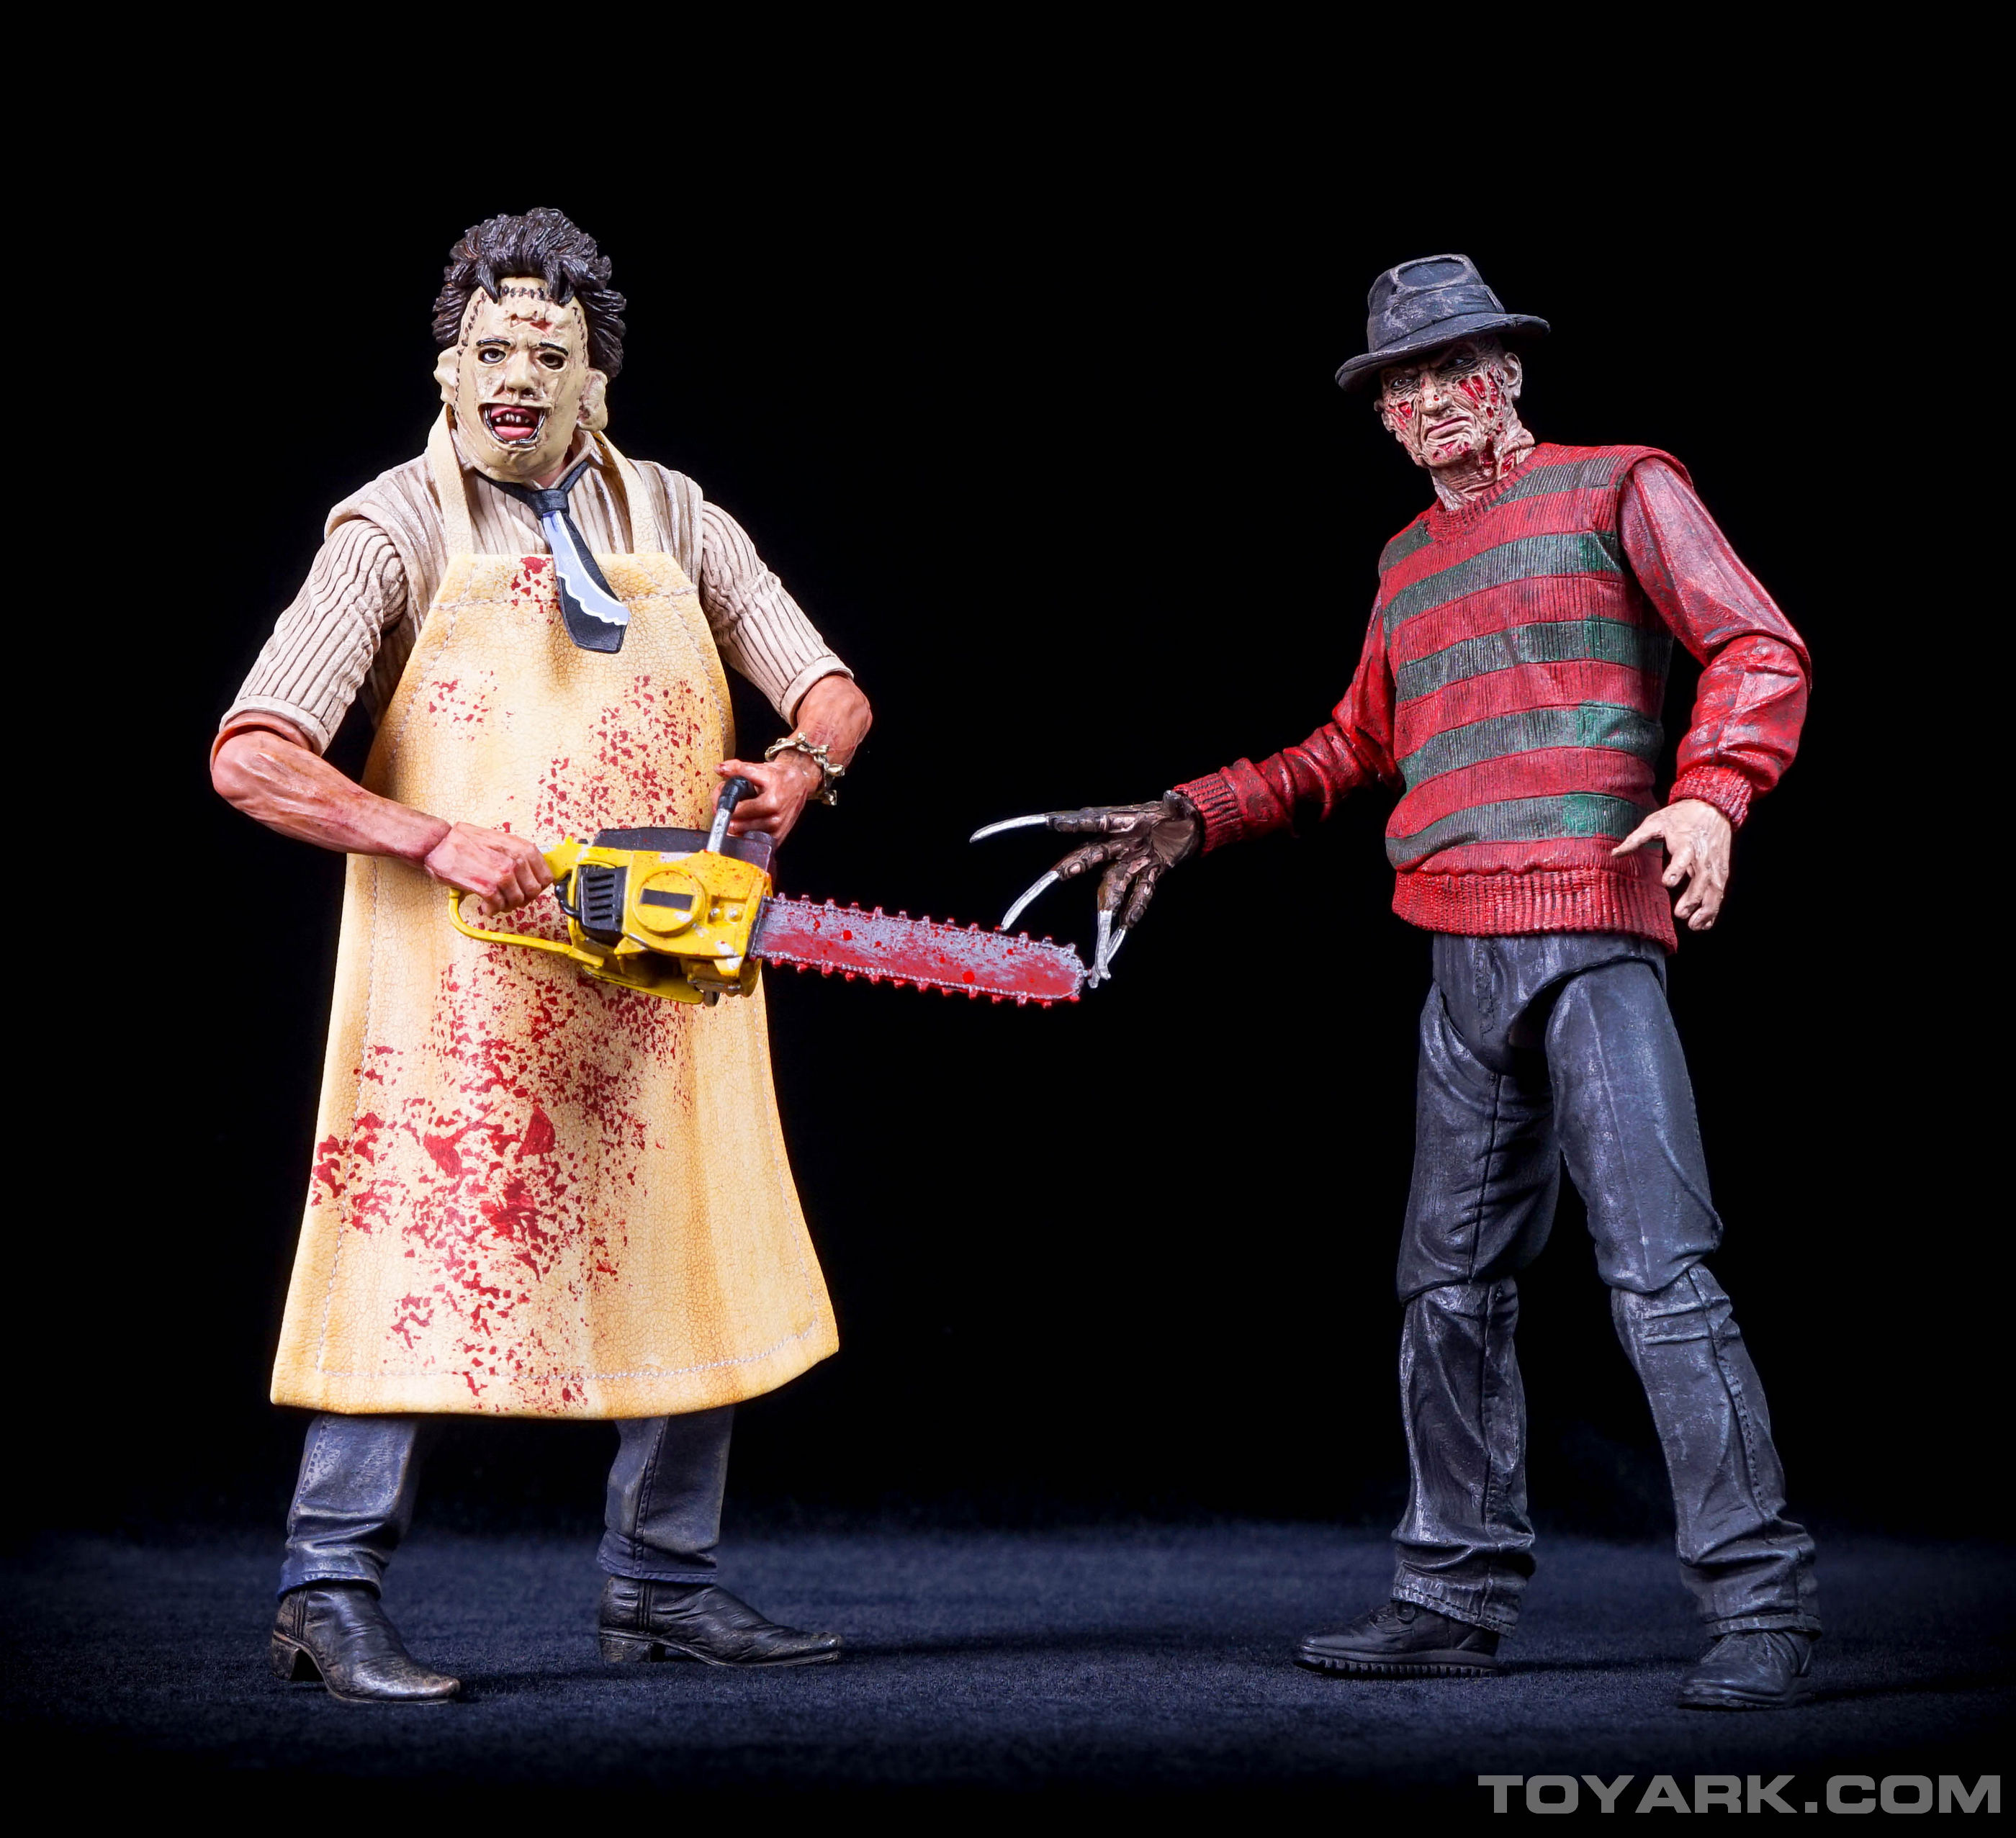 http://news.toyark.com/wp-content/uploads/sites/4/2015/08/NECA-TCM-Ultimate-Leatherface-068.jpg